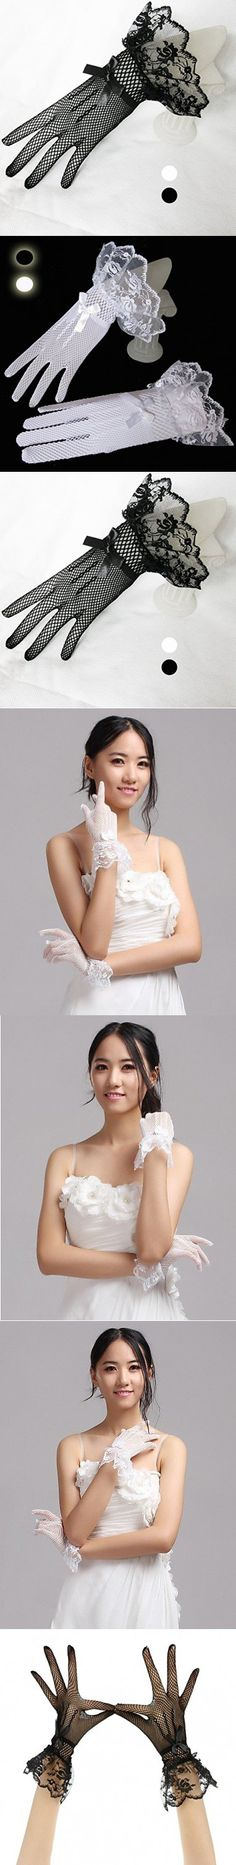 Party Fingertips Wrist Length Wedding Satin Bridal Lace Gloves (Black)